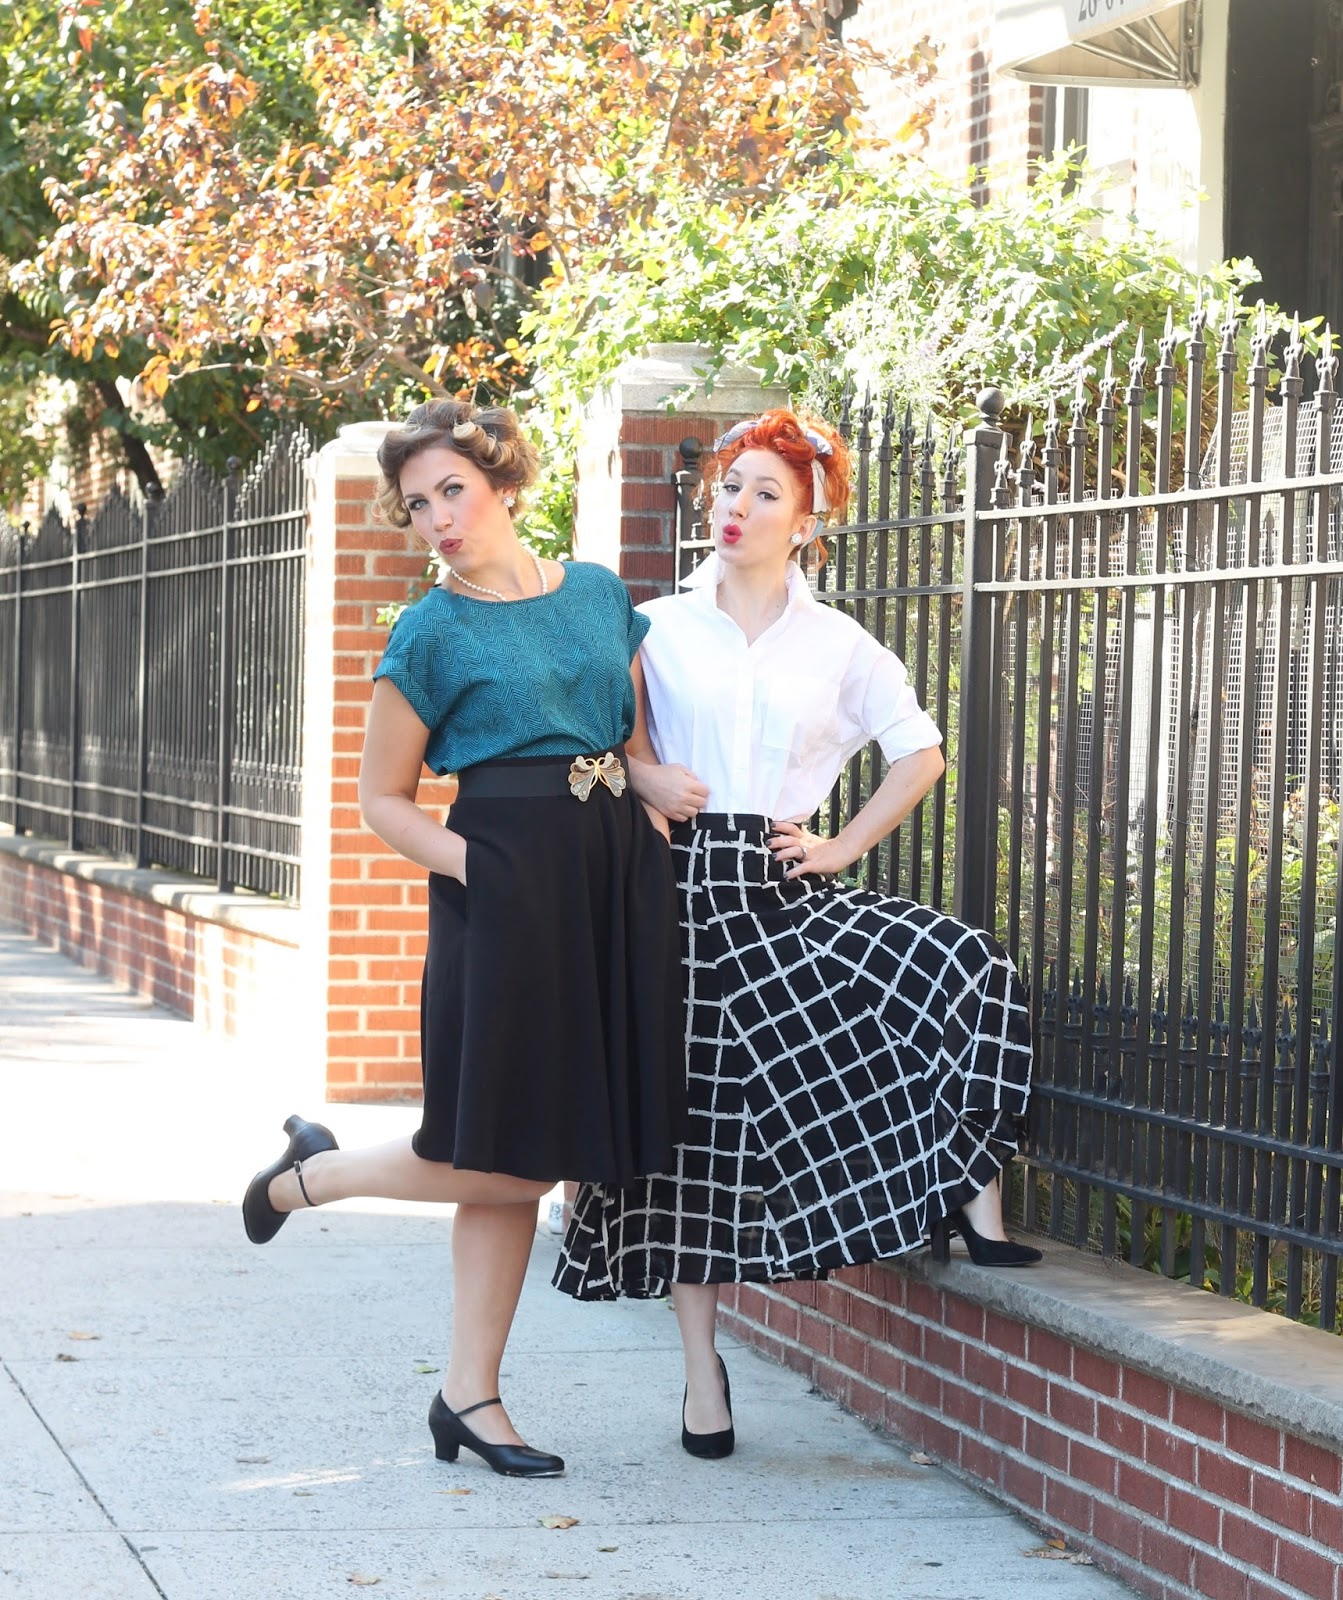 i love lucy costumes for cheap, costume ideas, lucy ricardo, closet costume ideas